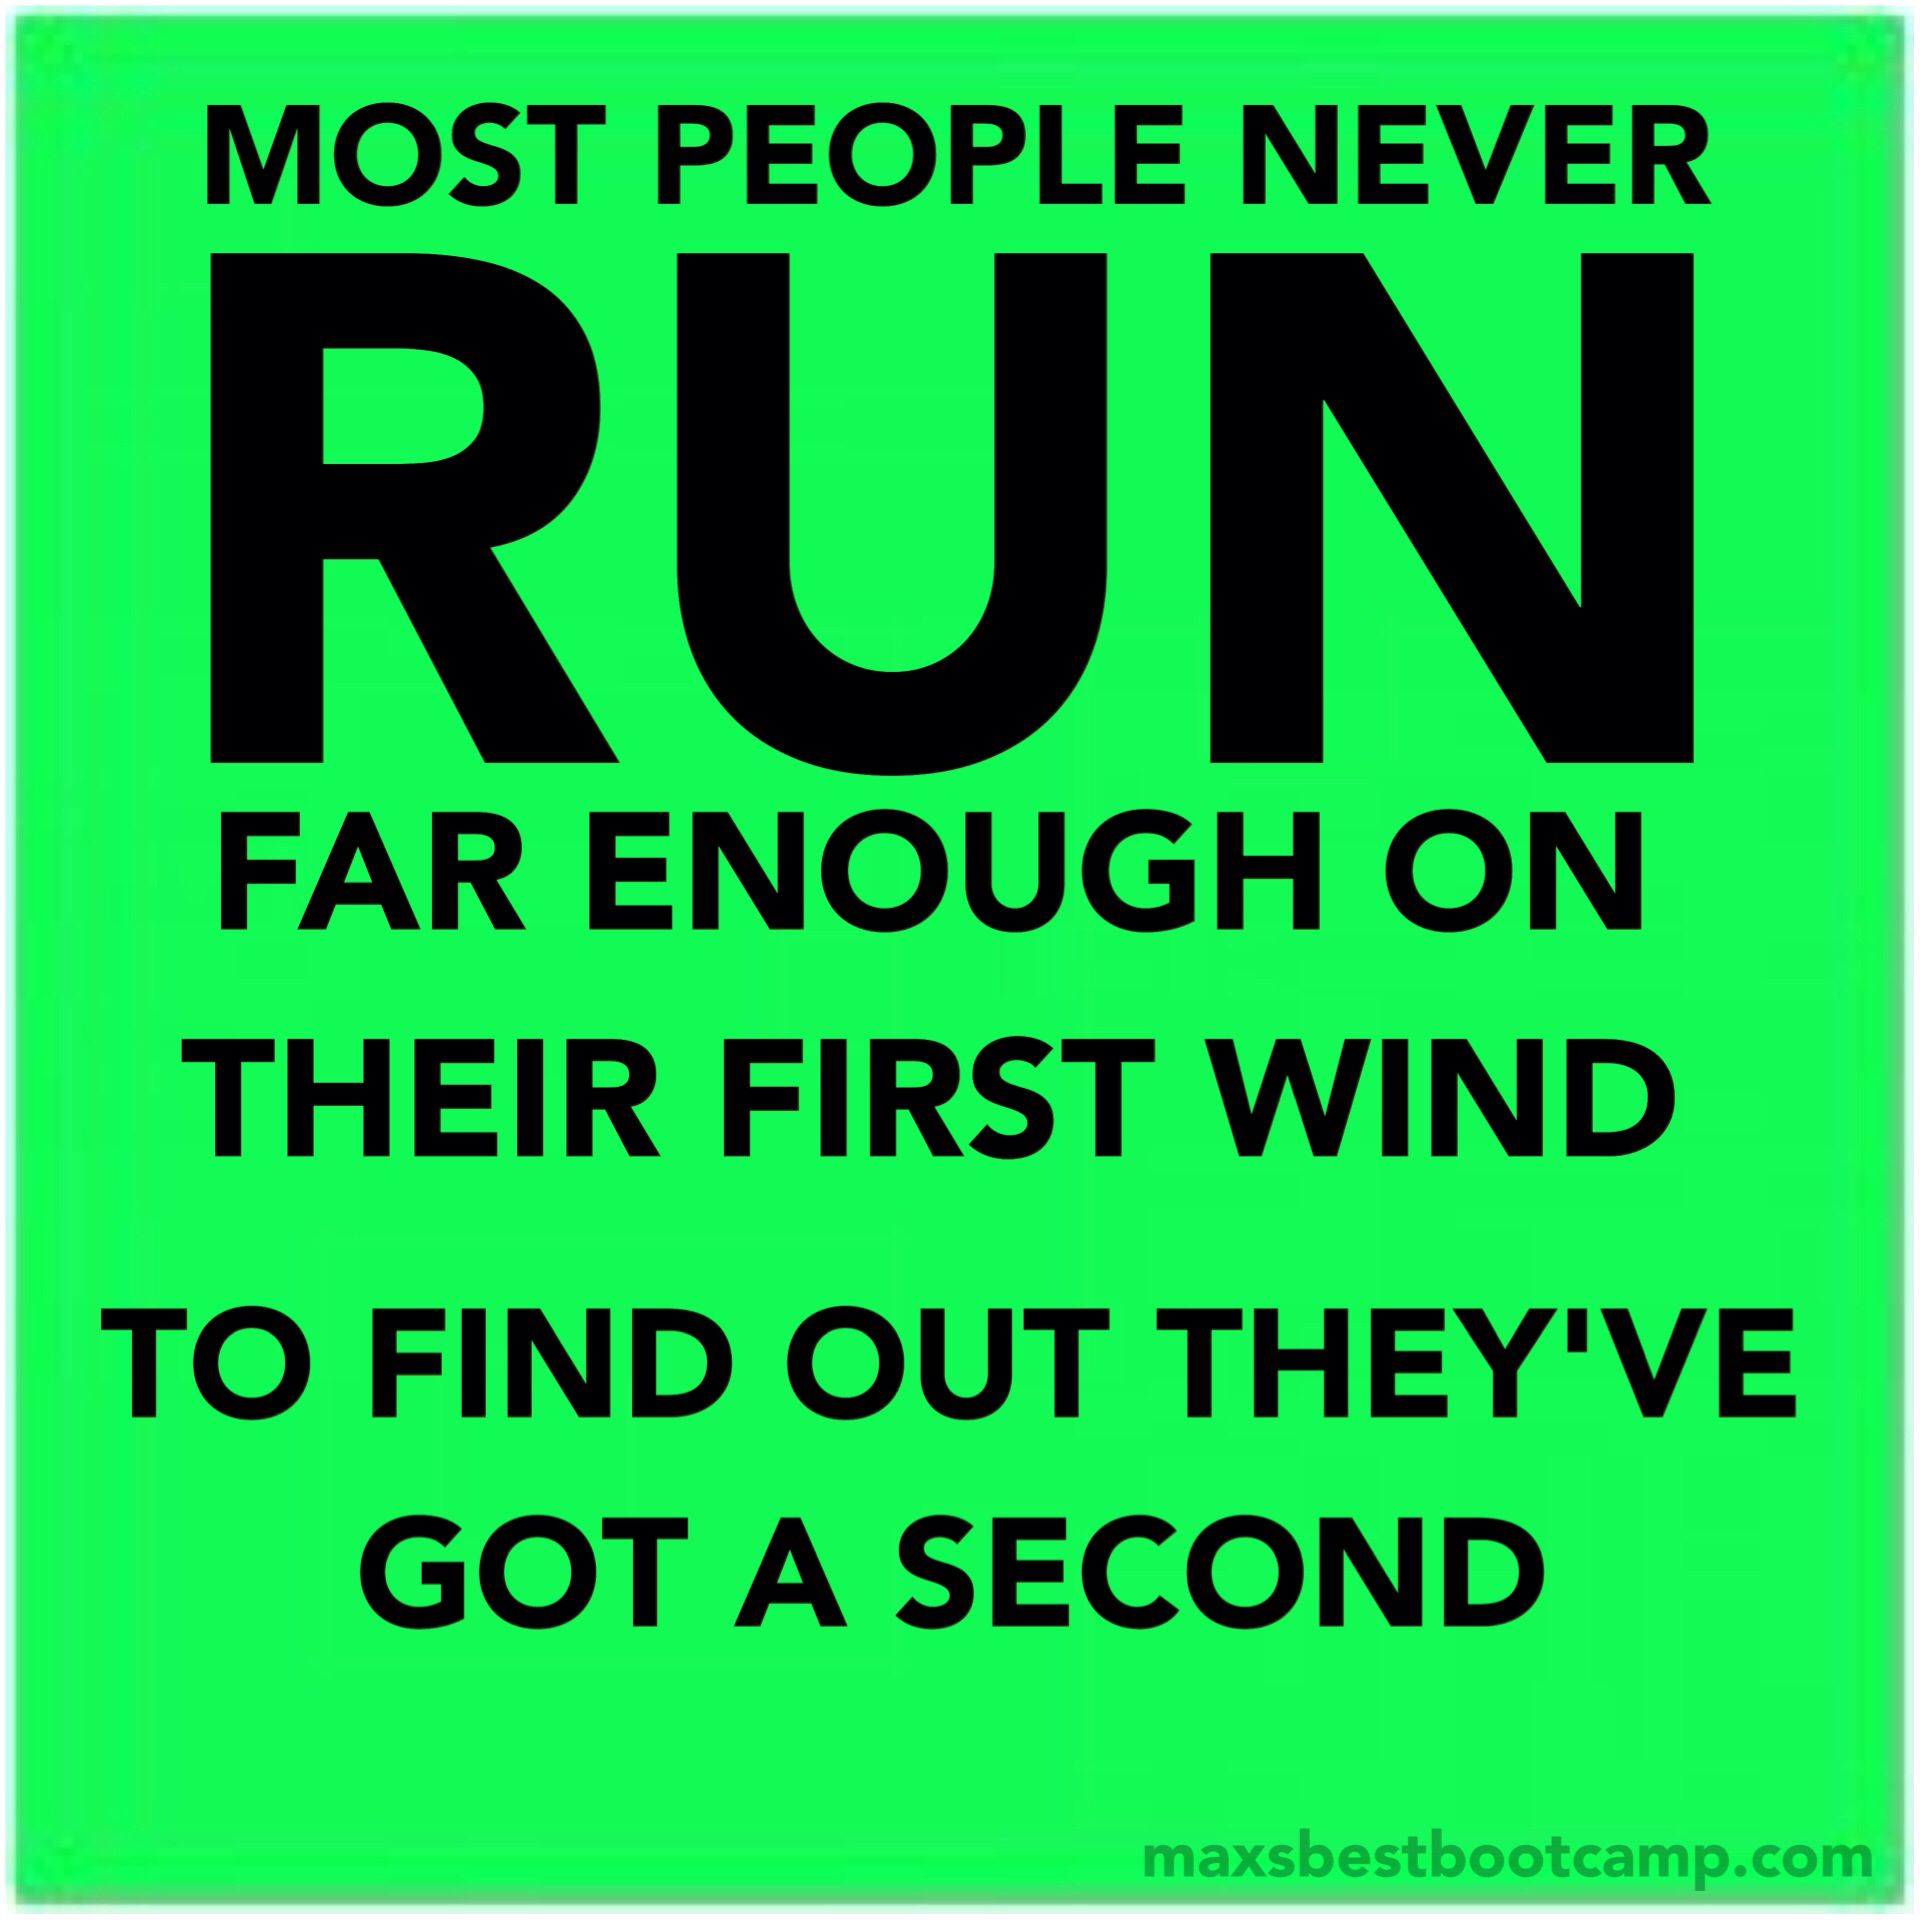 """Most people never RUN far enough on their 1st wind, to find out they've got a 2nd."" ~James #quote #fitness #motivation"